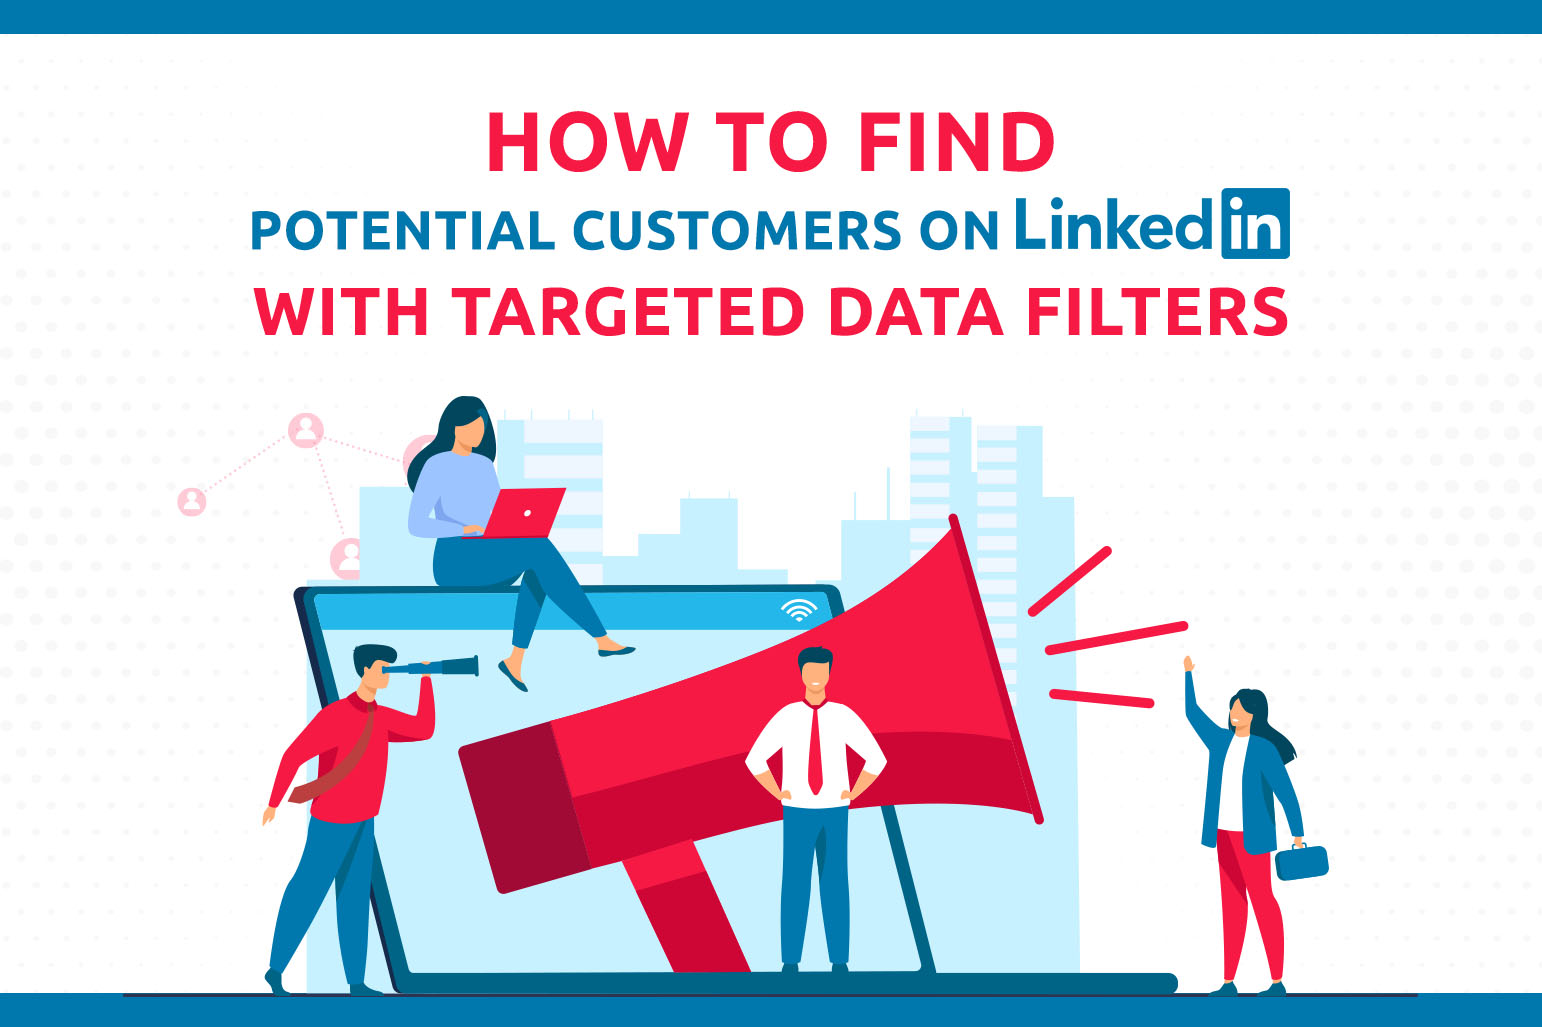 How To Find Potential Customers On LinkedIn With Targeted Data Filters